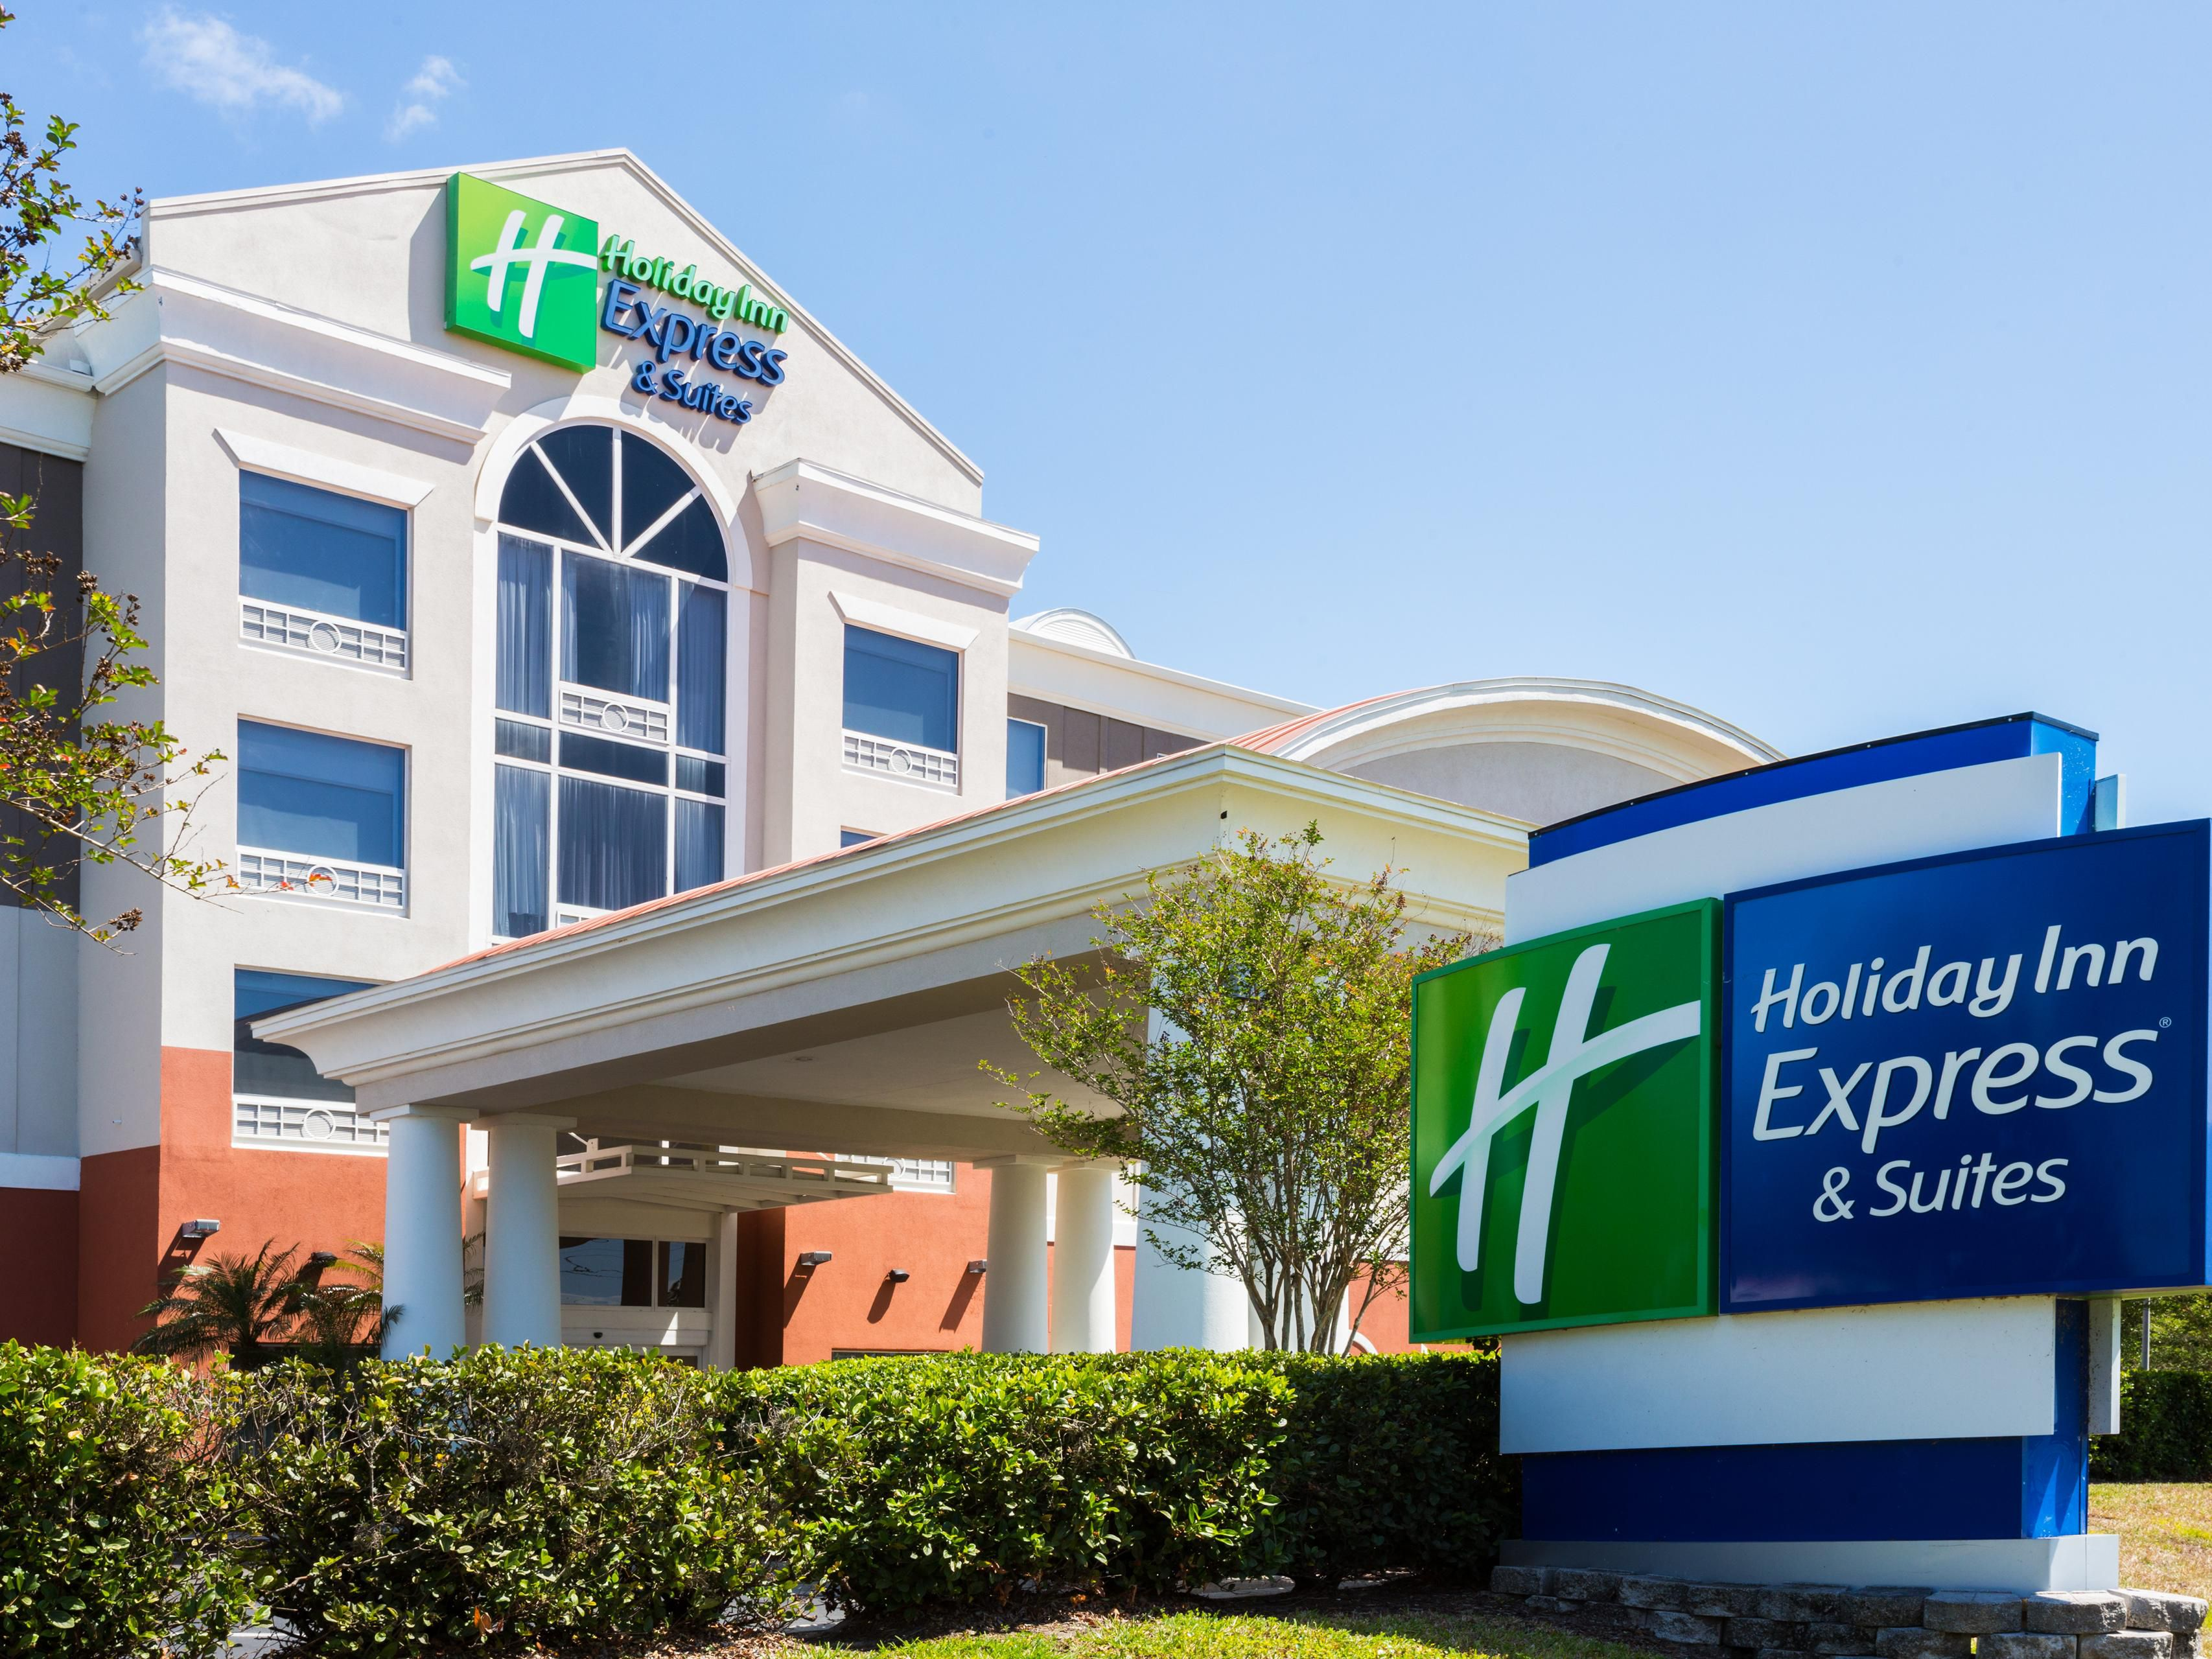 Holiday Inn Express Suites Tampa Fairgrounds Casino Hotel By Ihg